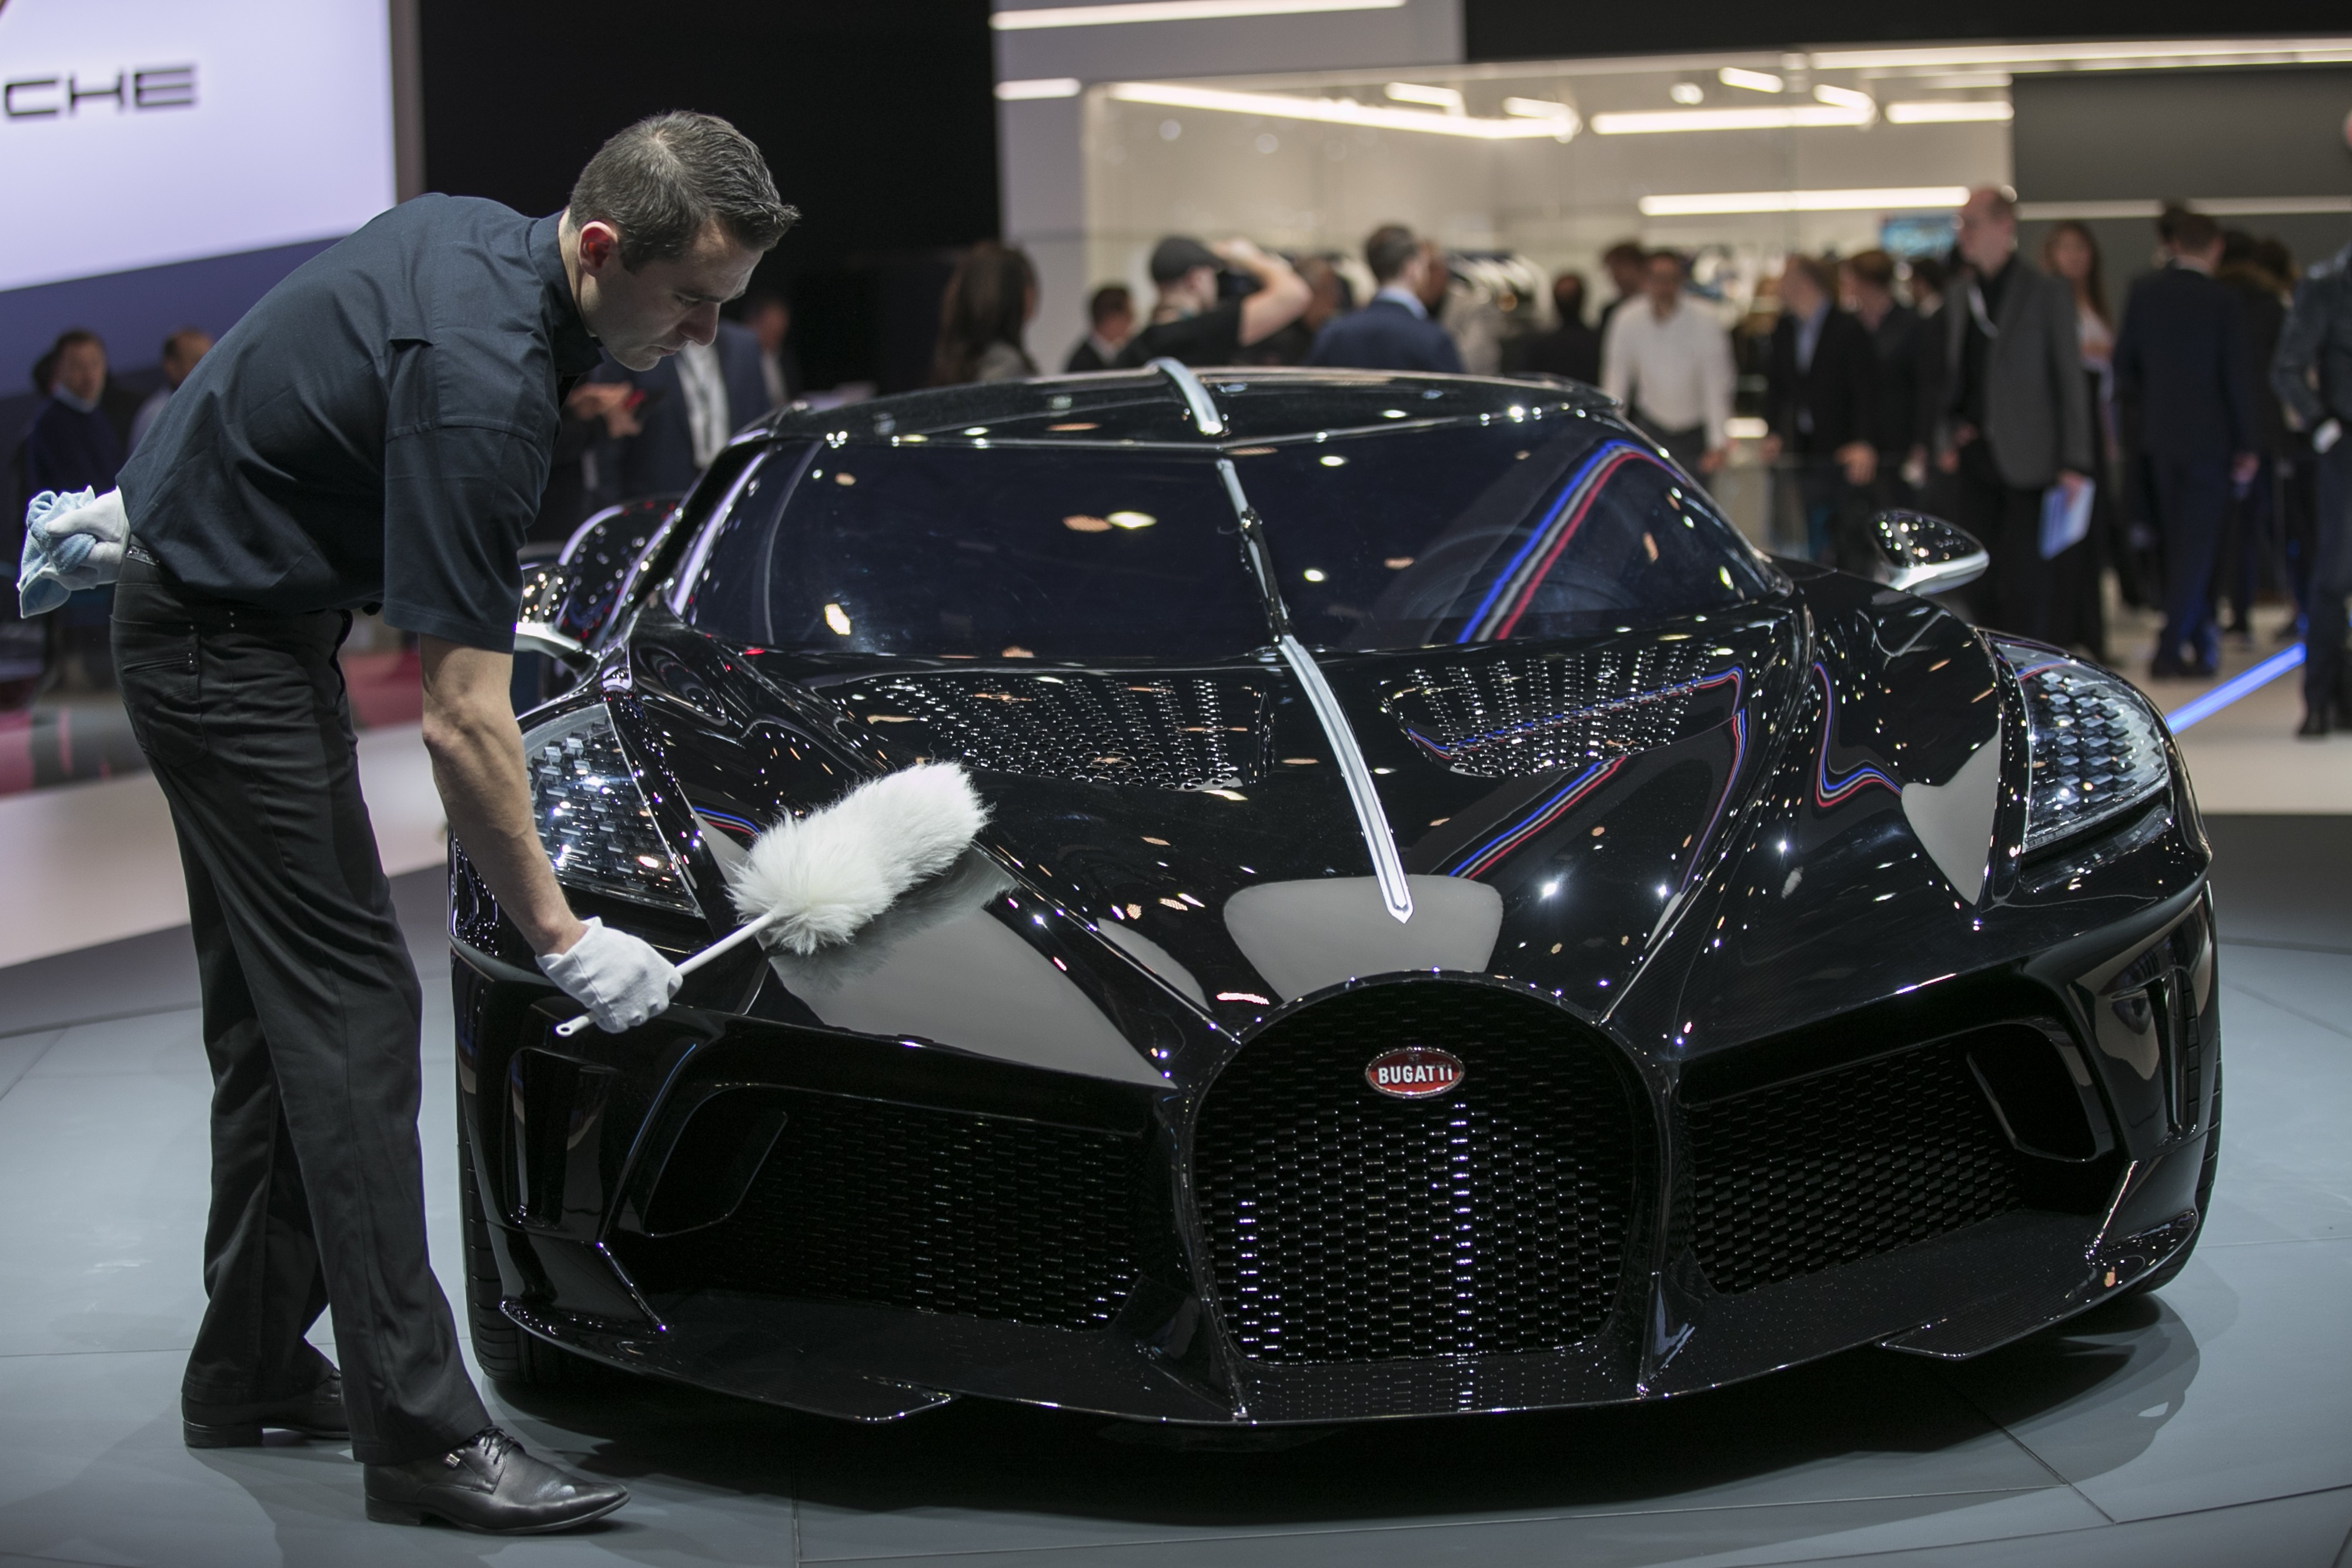 Batmobile Like Bugatti Most Expensive New Car Ever Made Snapped Up By Mystery Buyer For Us 12 5 Million South China Morning Post